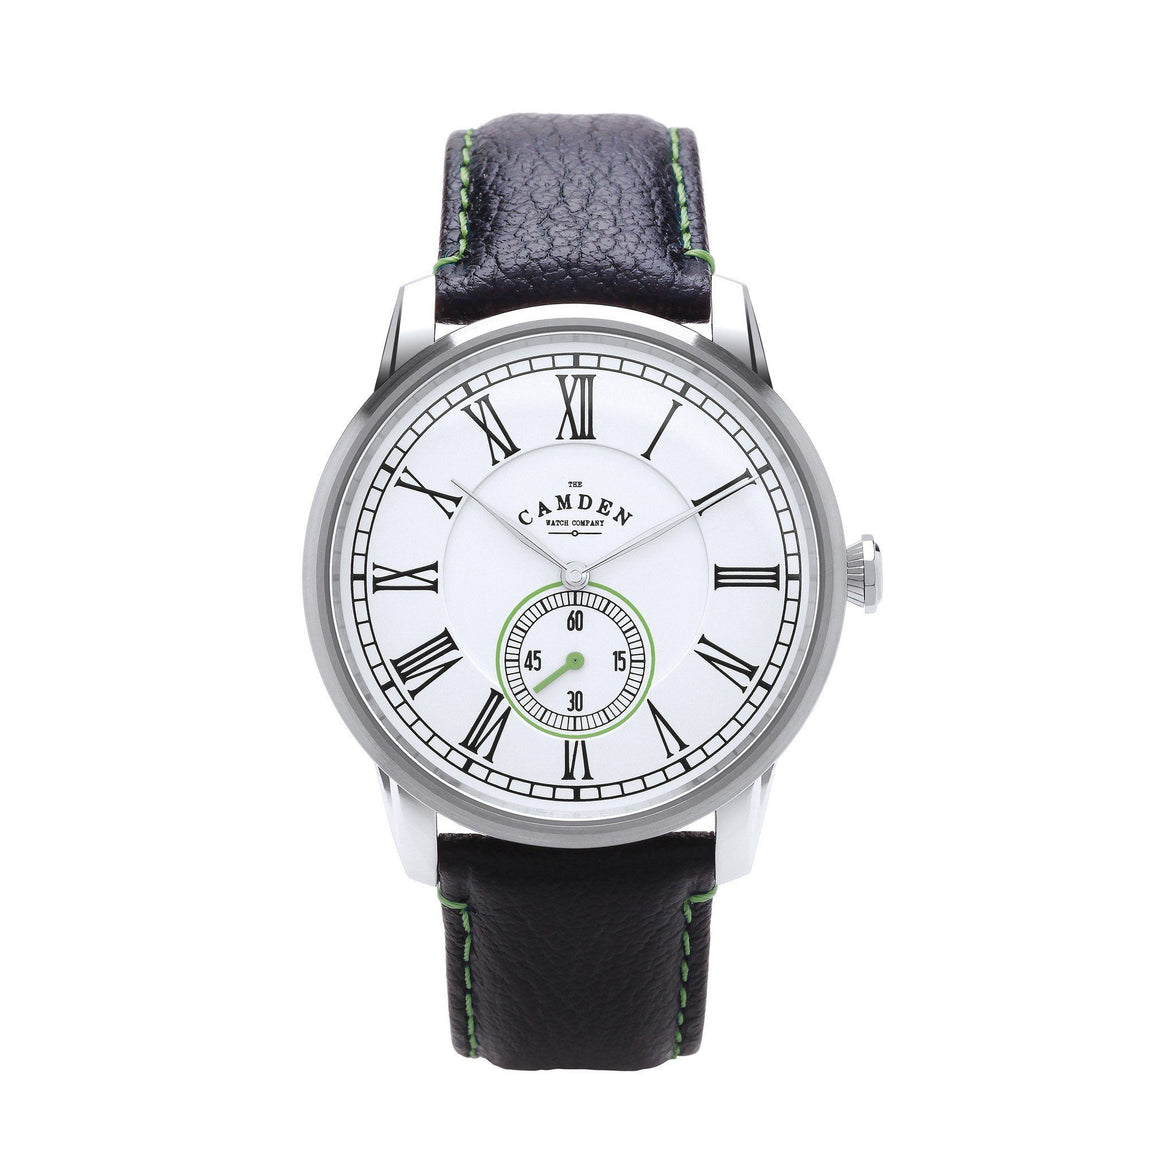 No.29 Gents Camden Watch Steel, Black And Green